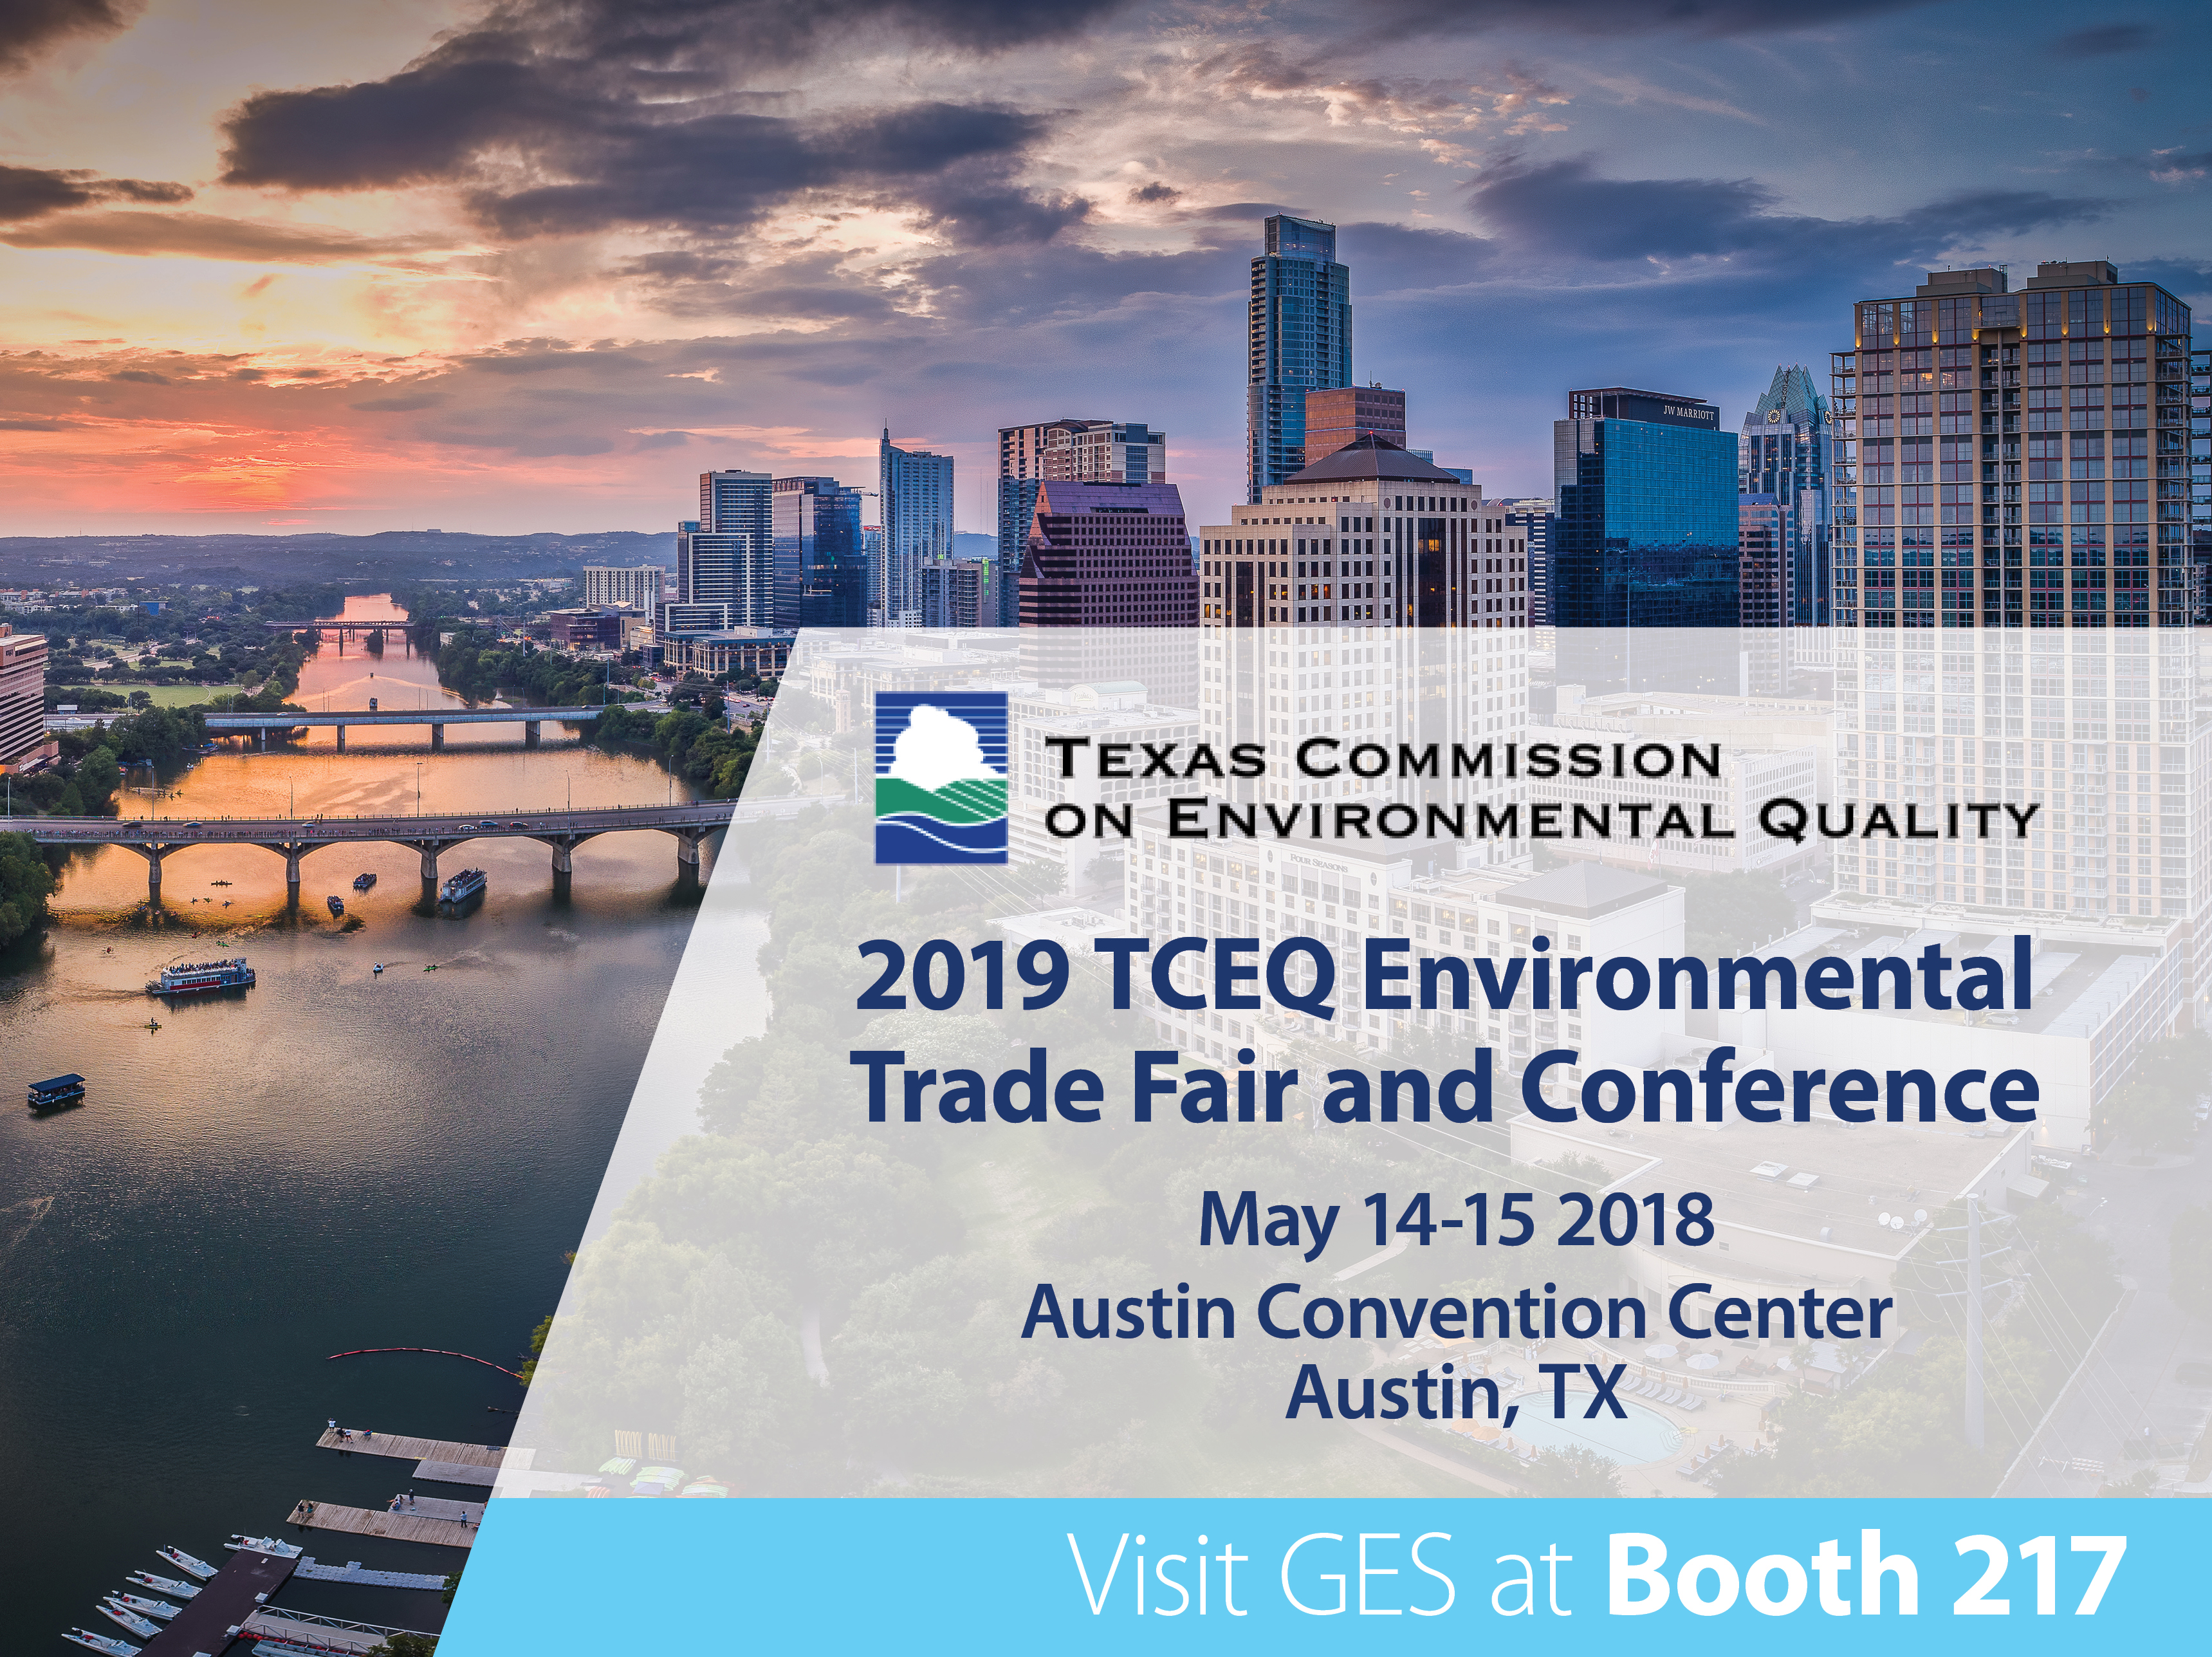 2019 TCEQ Booth 217